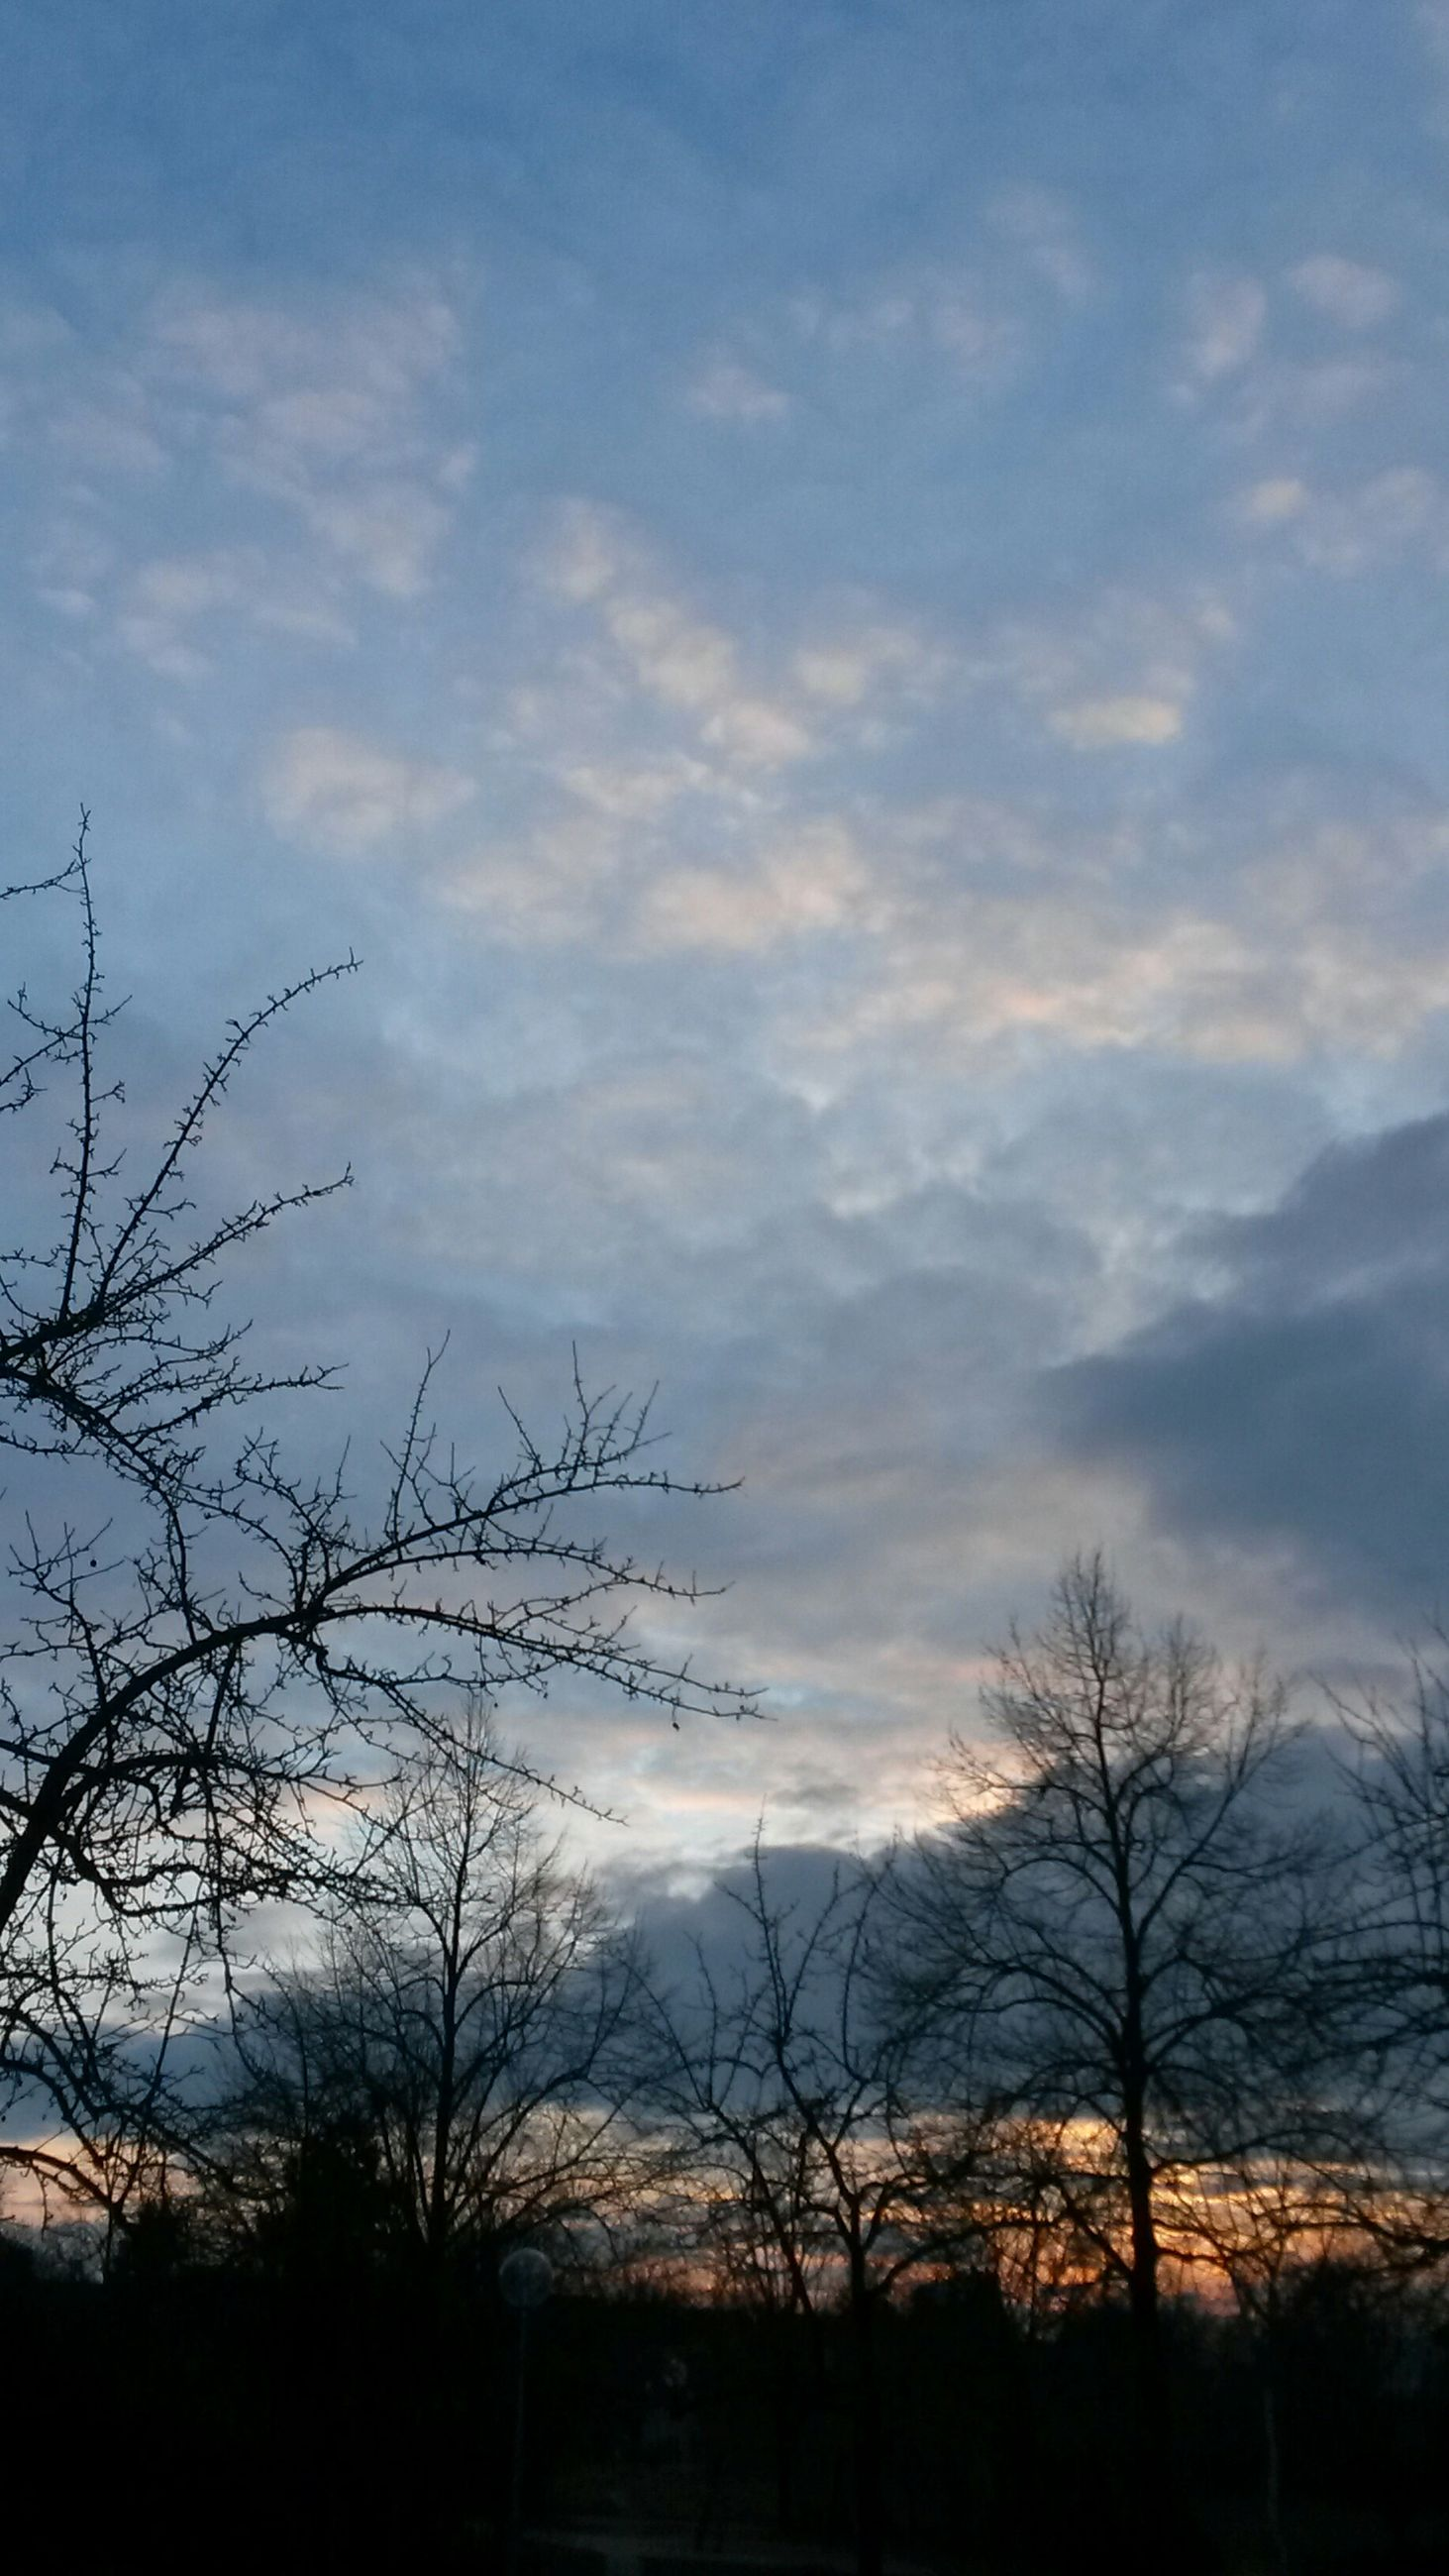 bare tree, silhouette, sky, tree, low angle view, cloud - sky, sunset, branch, cloudy, beauty in nature, tranquility, nature, cloud, scenics, dusk, tranquil scene, outdoors, no people, built structure, building exterior